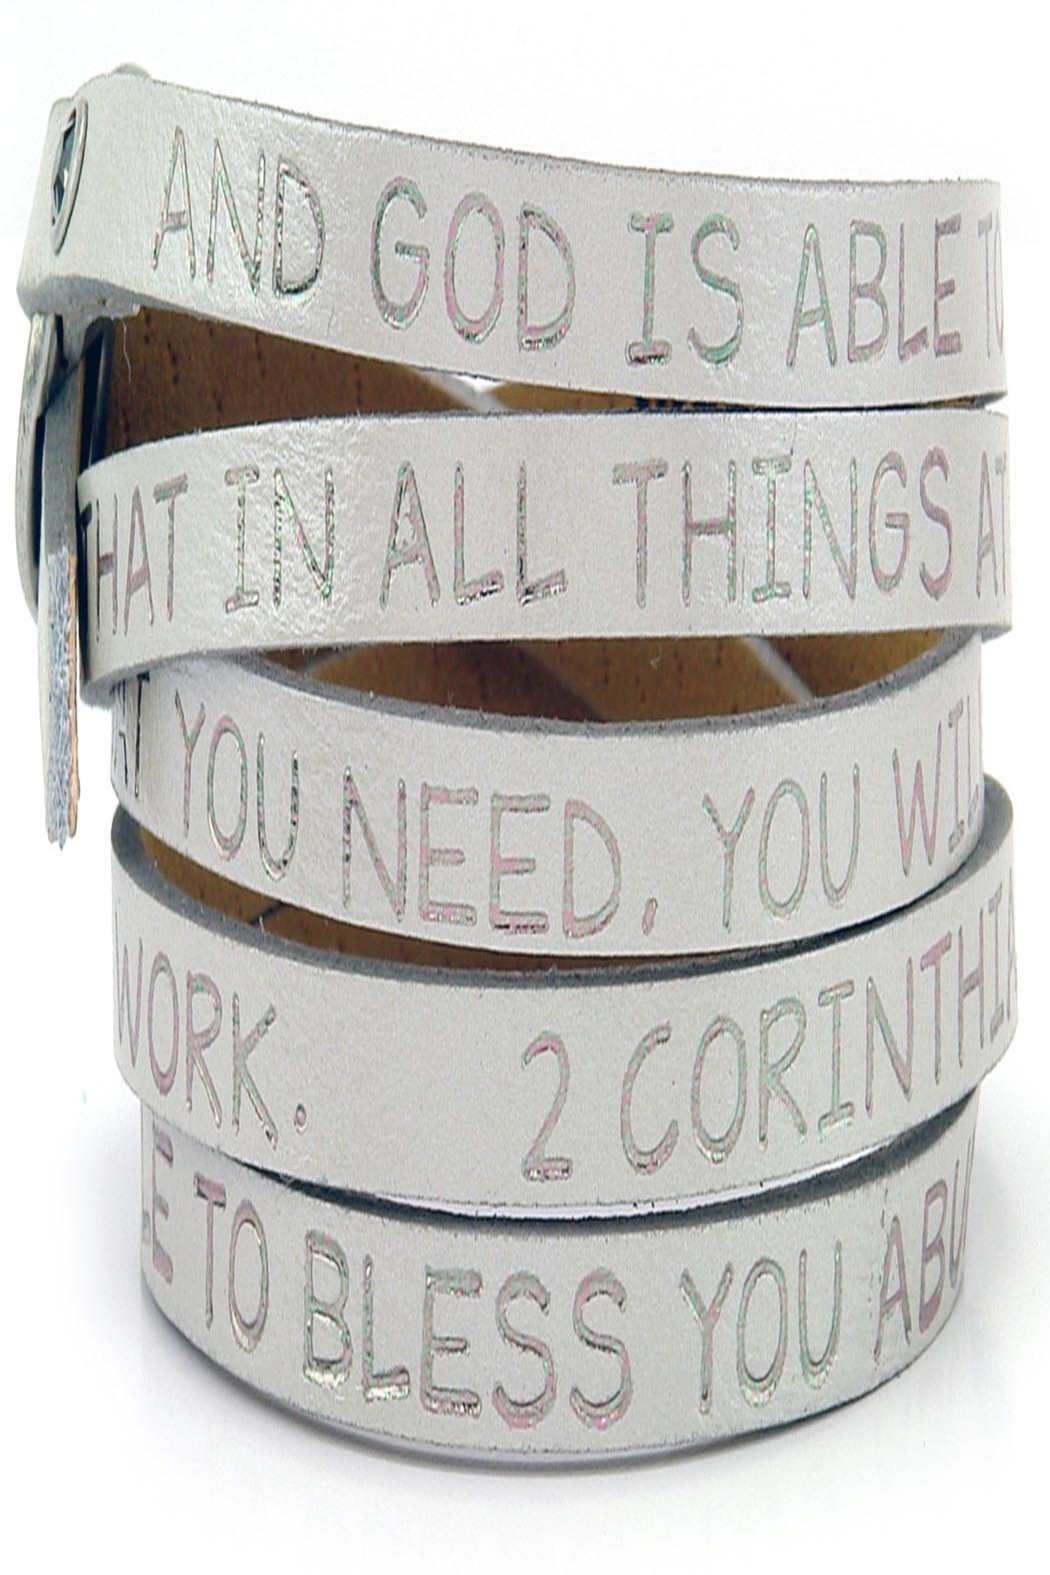 jacobi bracelet shani jewelry products inspirational